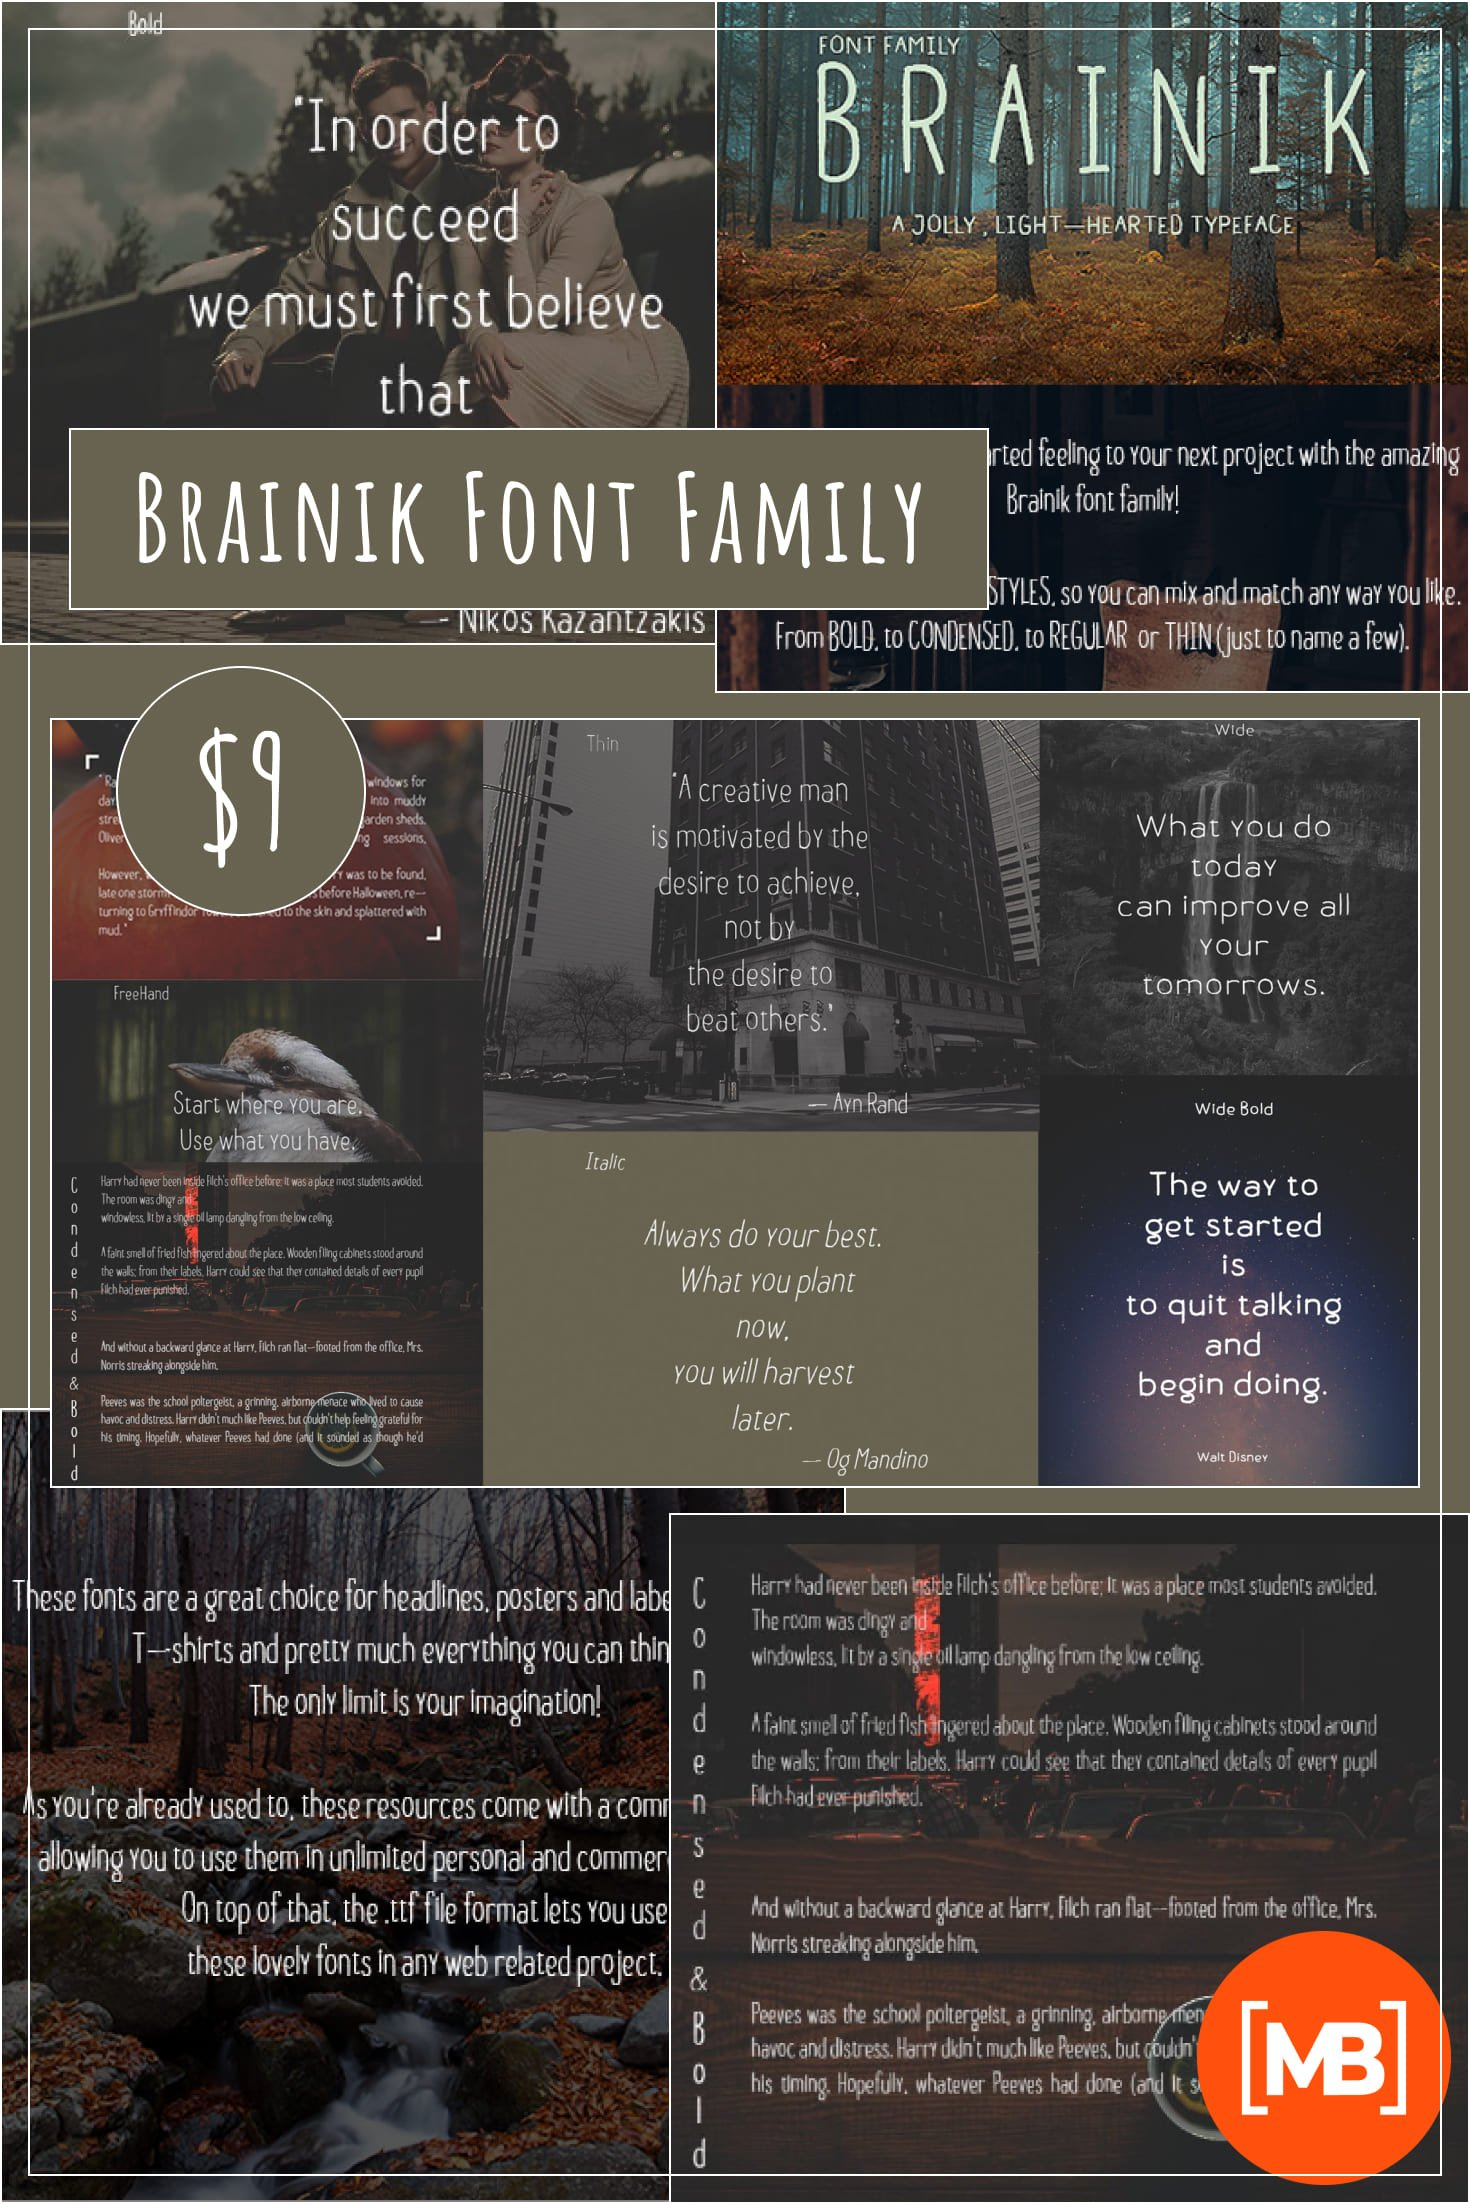 Brainik Font Family: a Typeface You'll Love - Just $9!. Collage Image.